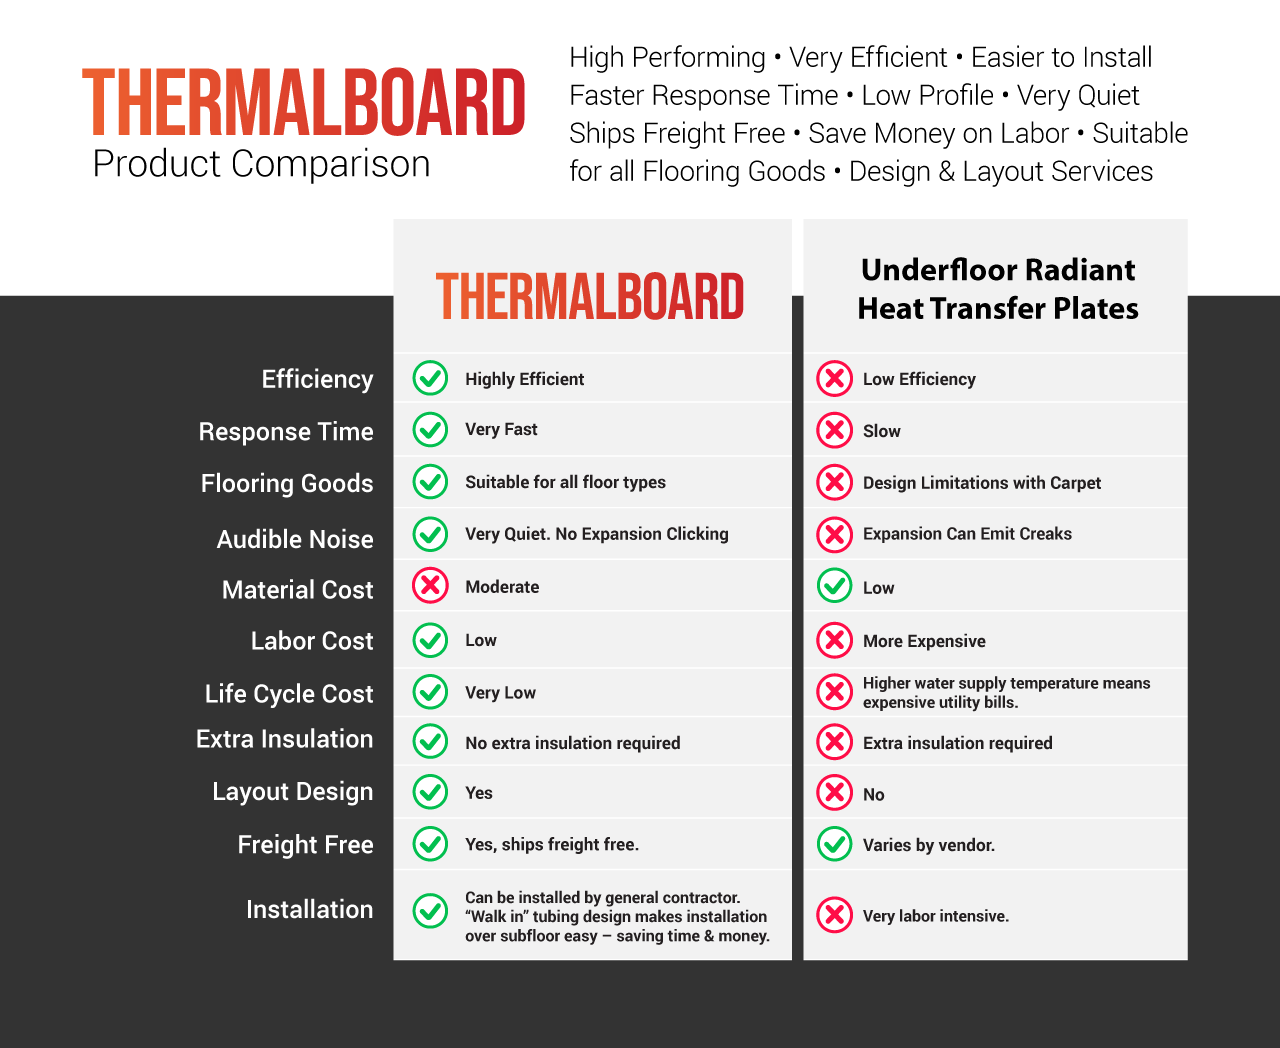 Thermalboard Compared to Radiantec Underfloor Heat Transfer Plates Staple-Up